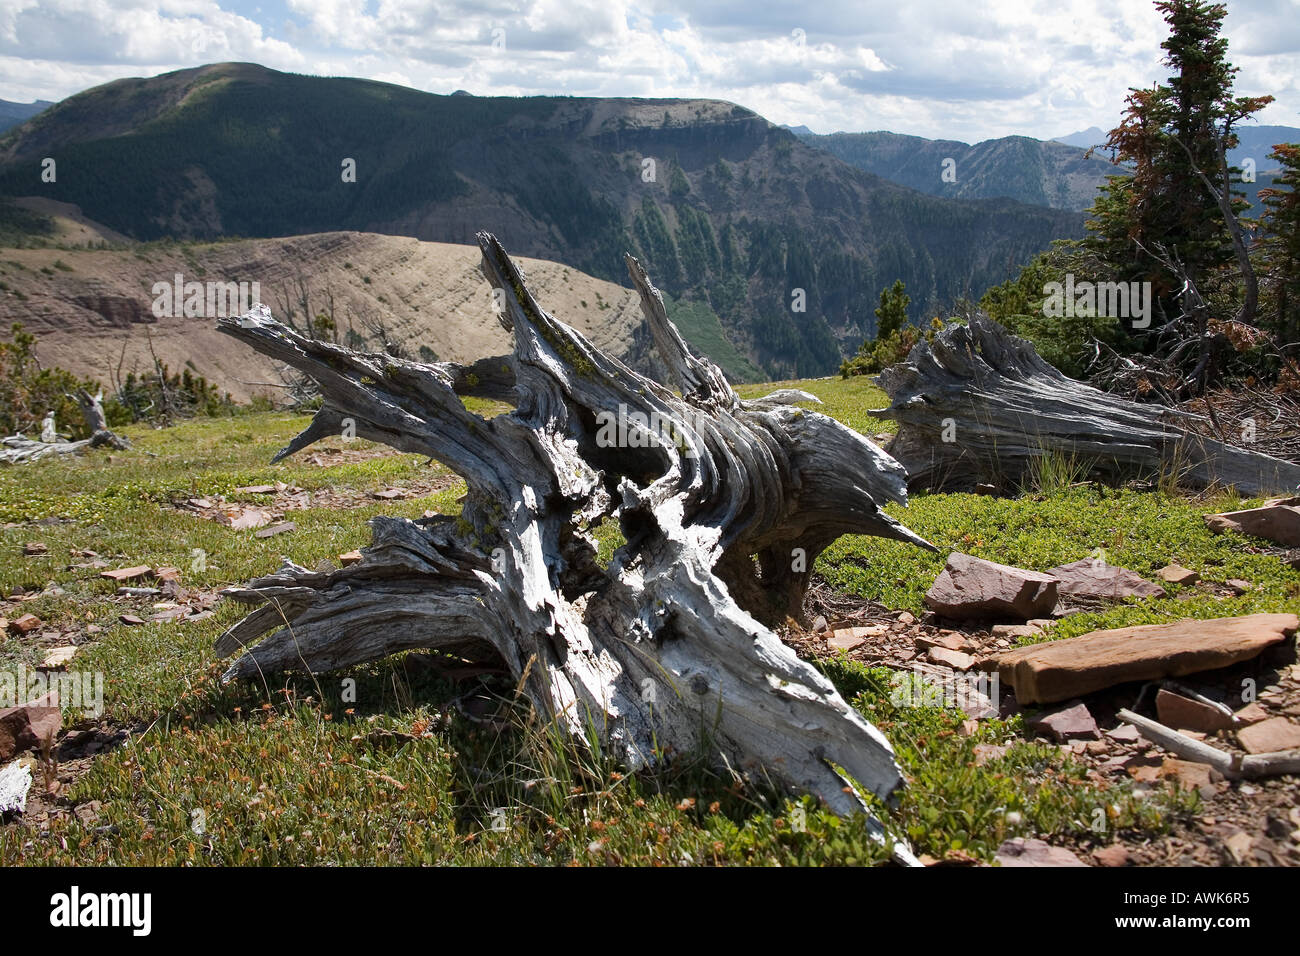 Skeletal dead trees look like weird creatures on Table Mountain Alberta Canada - Stock Image